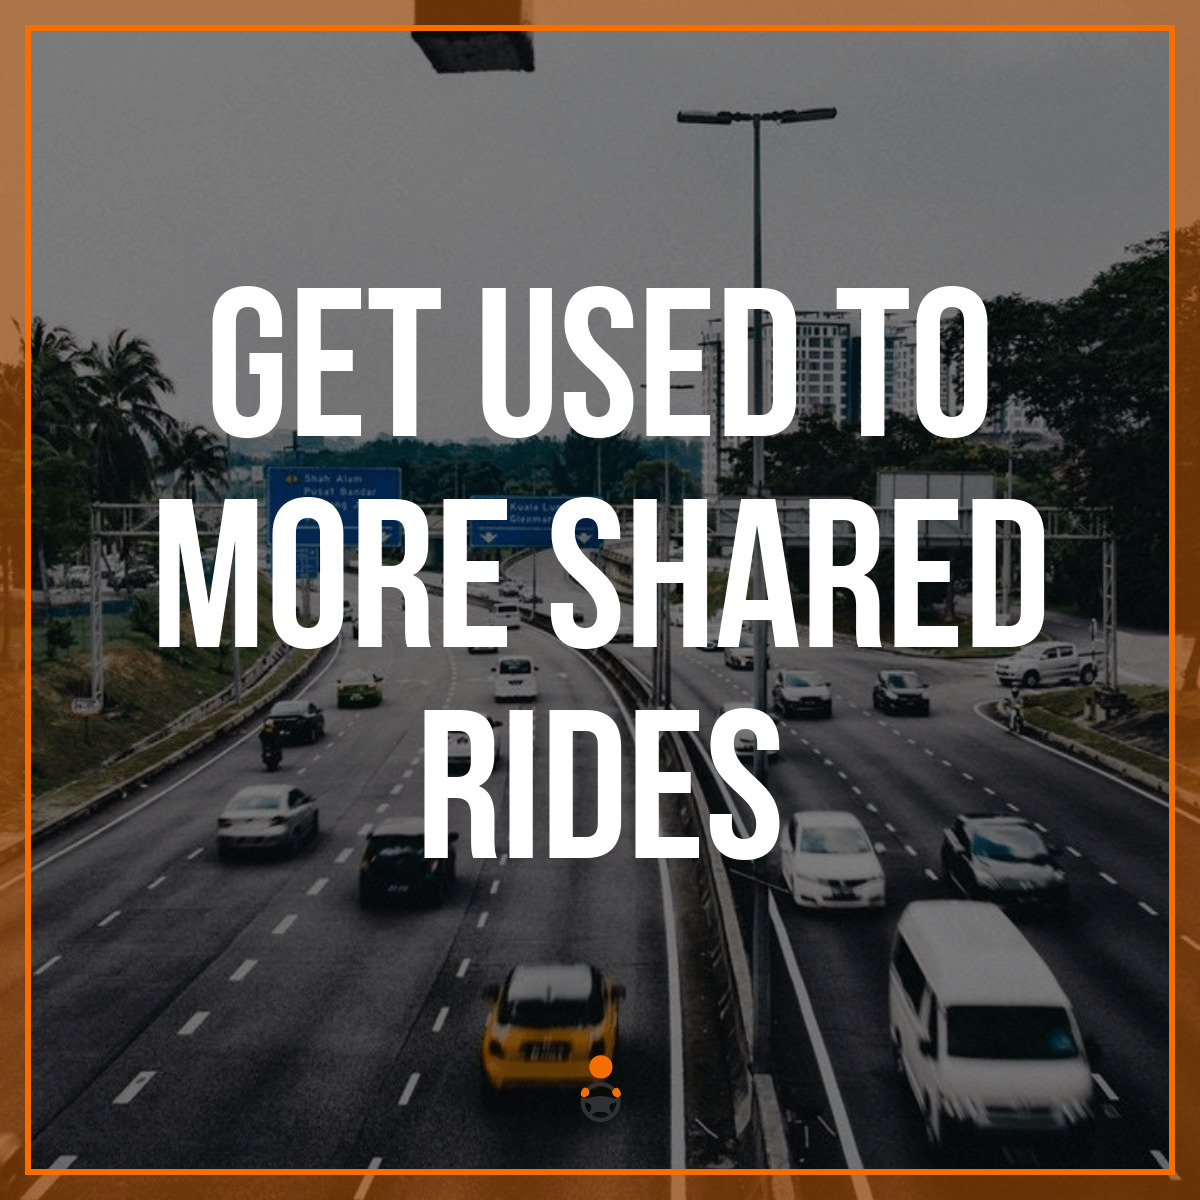 Get Used to More Shared Rides